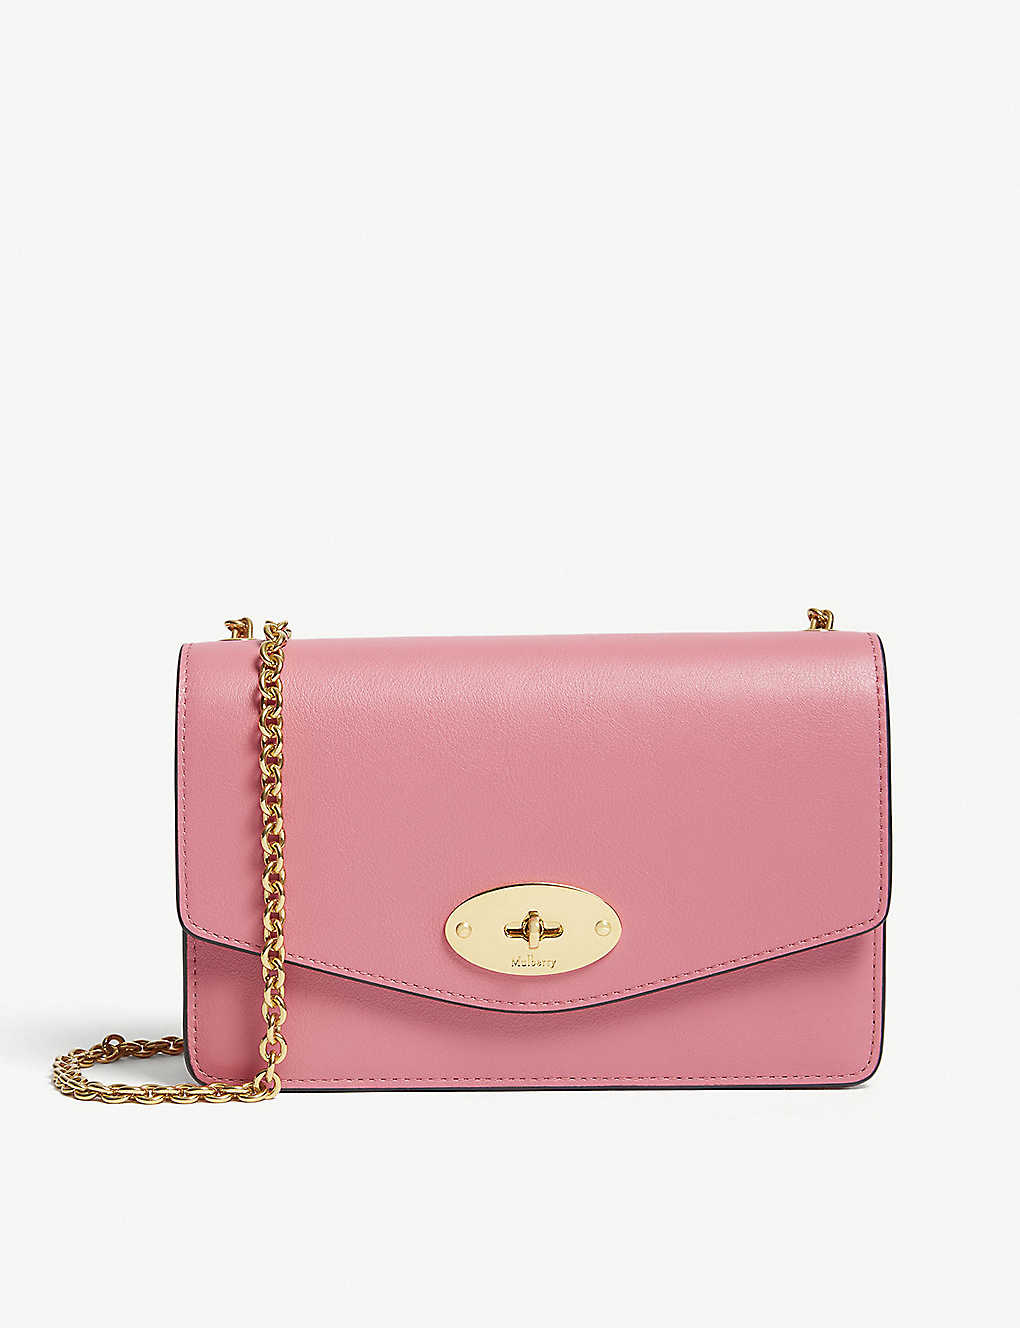 MULBERRY - Darley small leather cross-body bag  e0c8c09c9b450